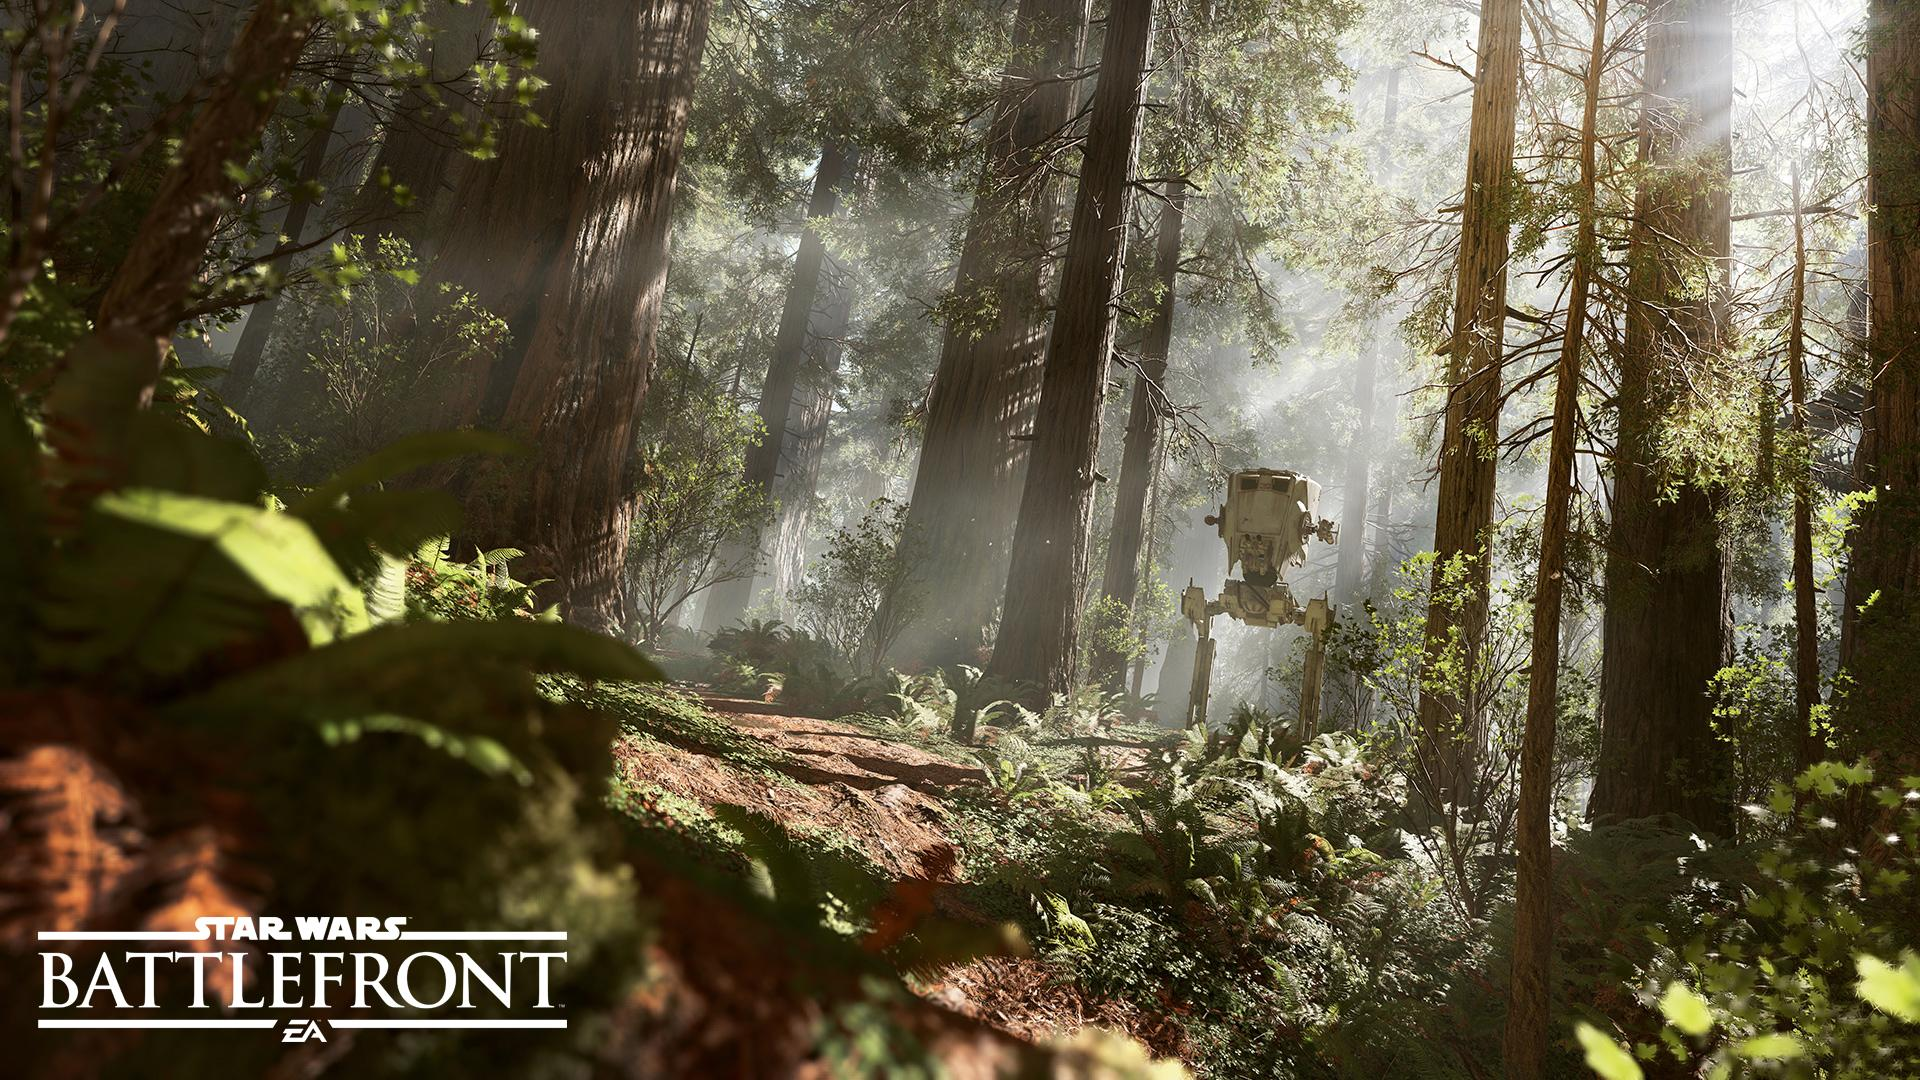 Pubg Wallpaper Hd Reddit Star Wars Battlefront Screenshot Shows In Game Look At